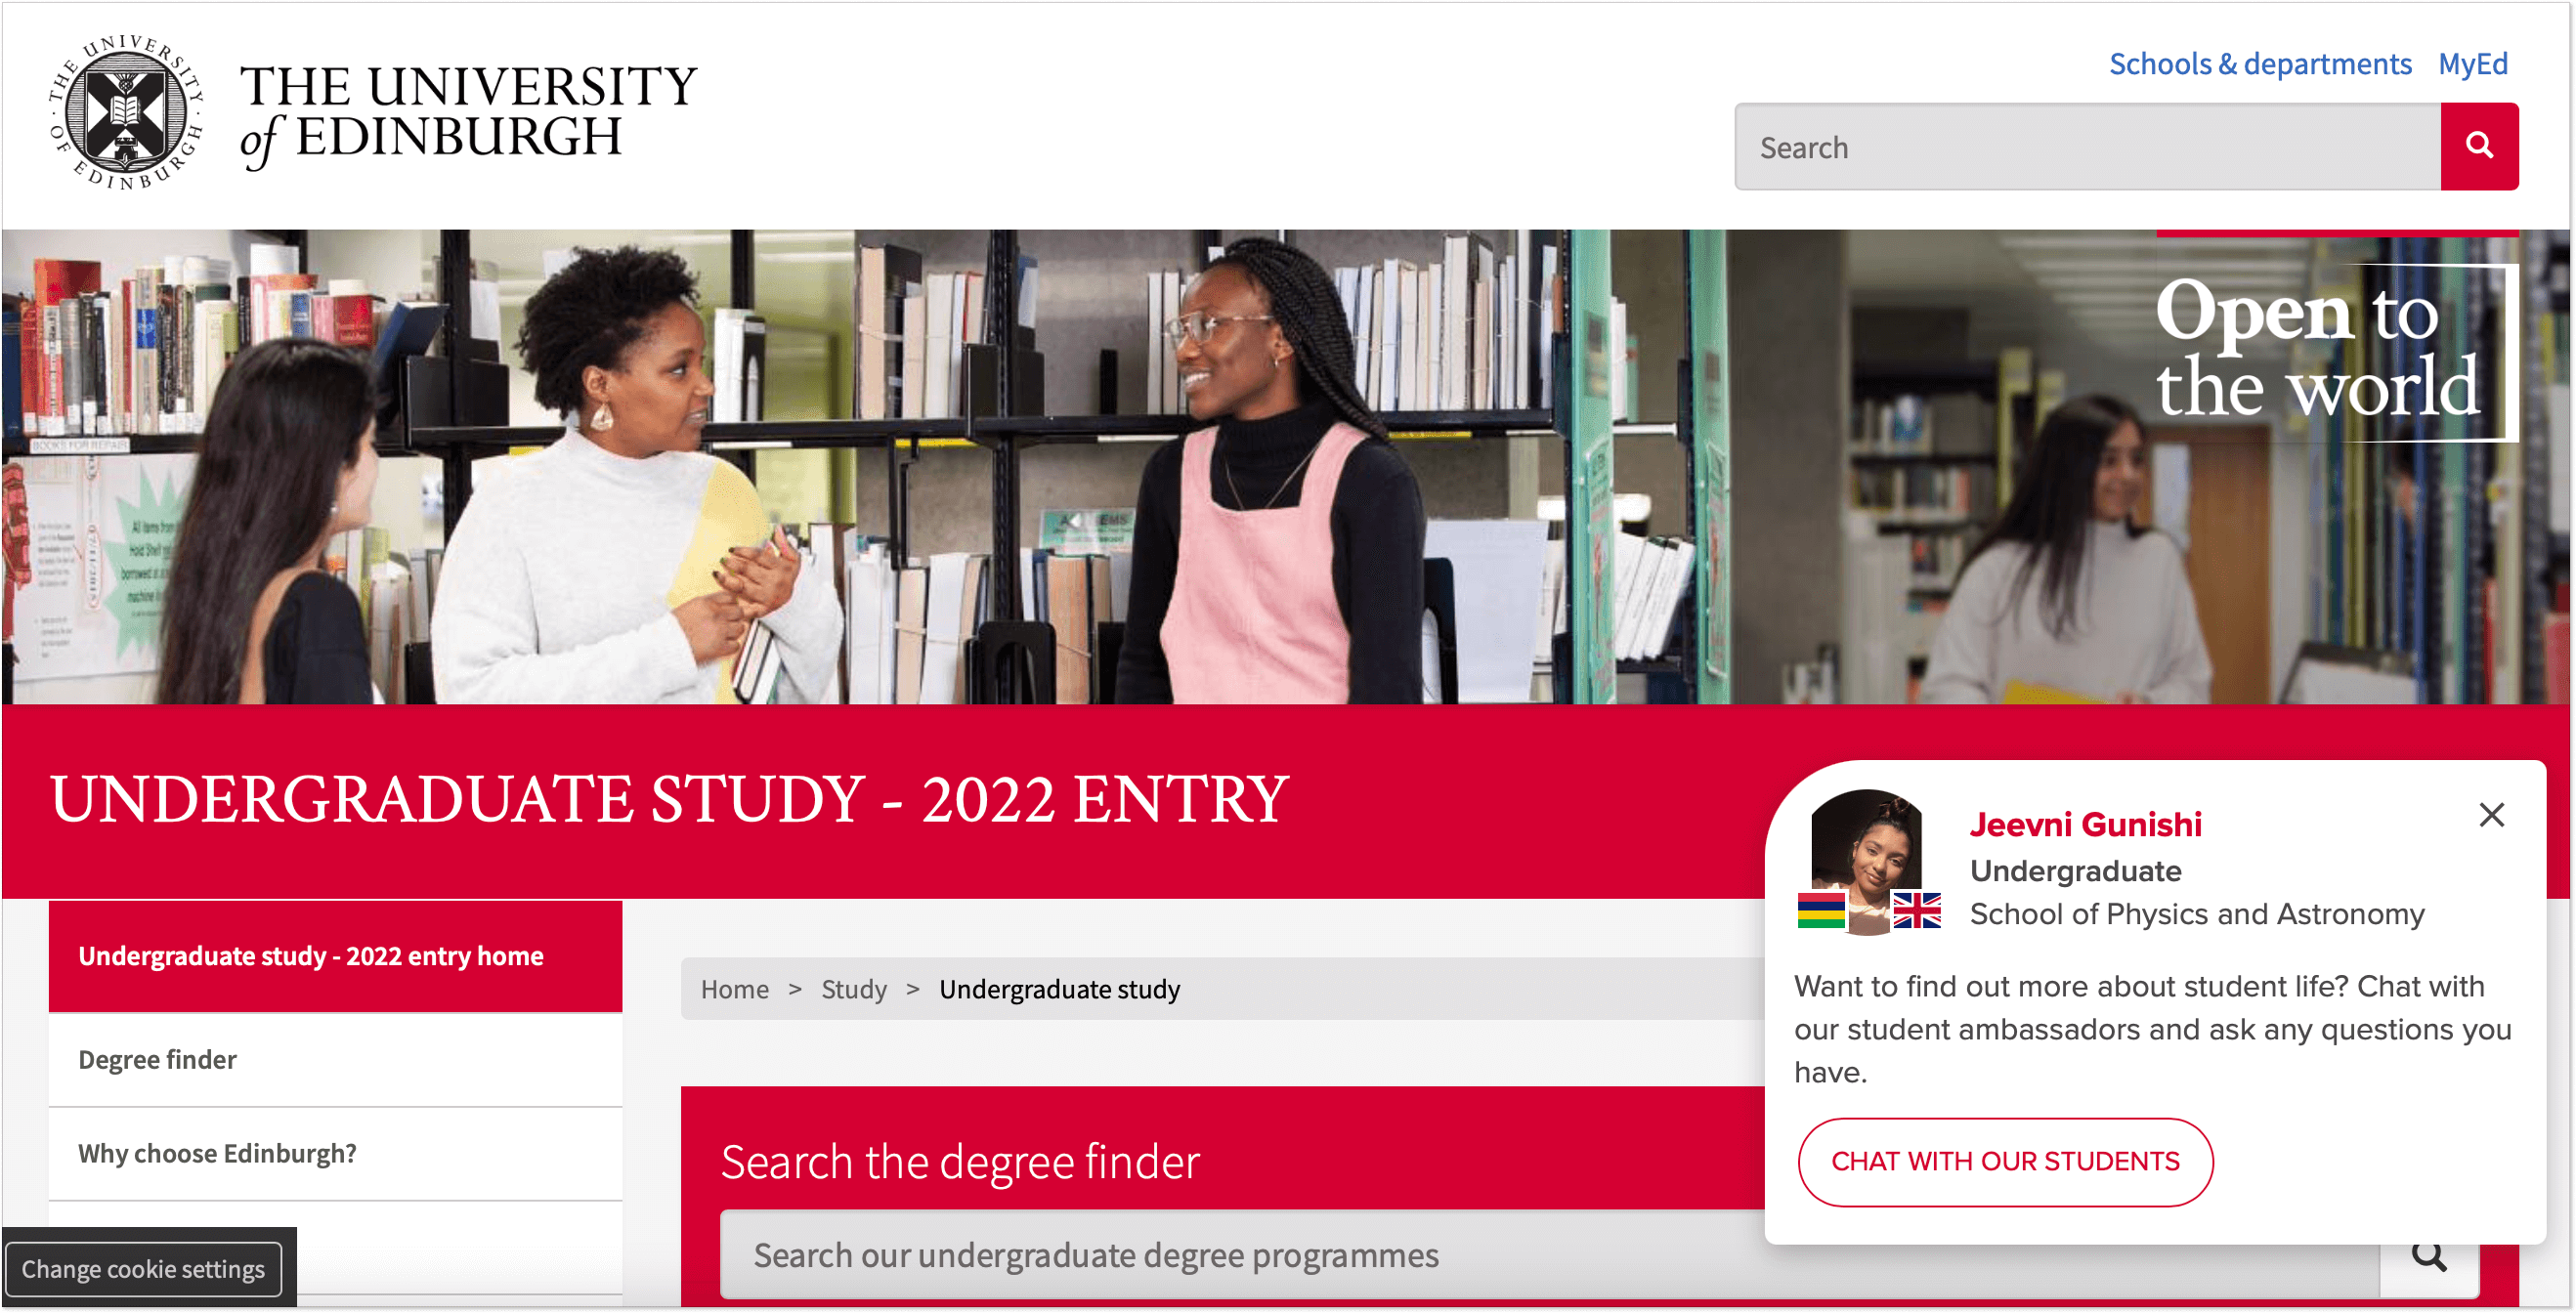 Chat with students_The University of Edinburgh